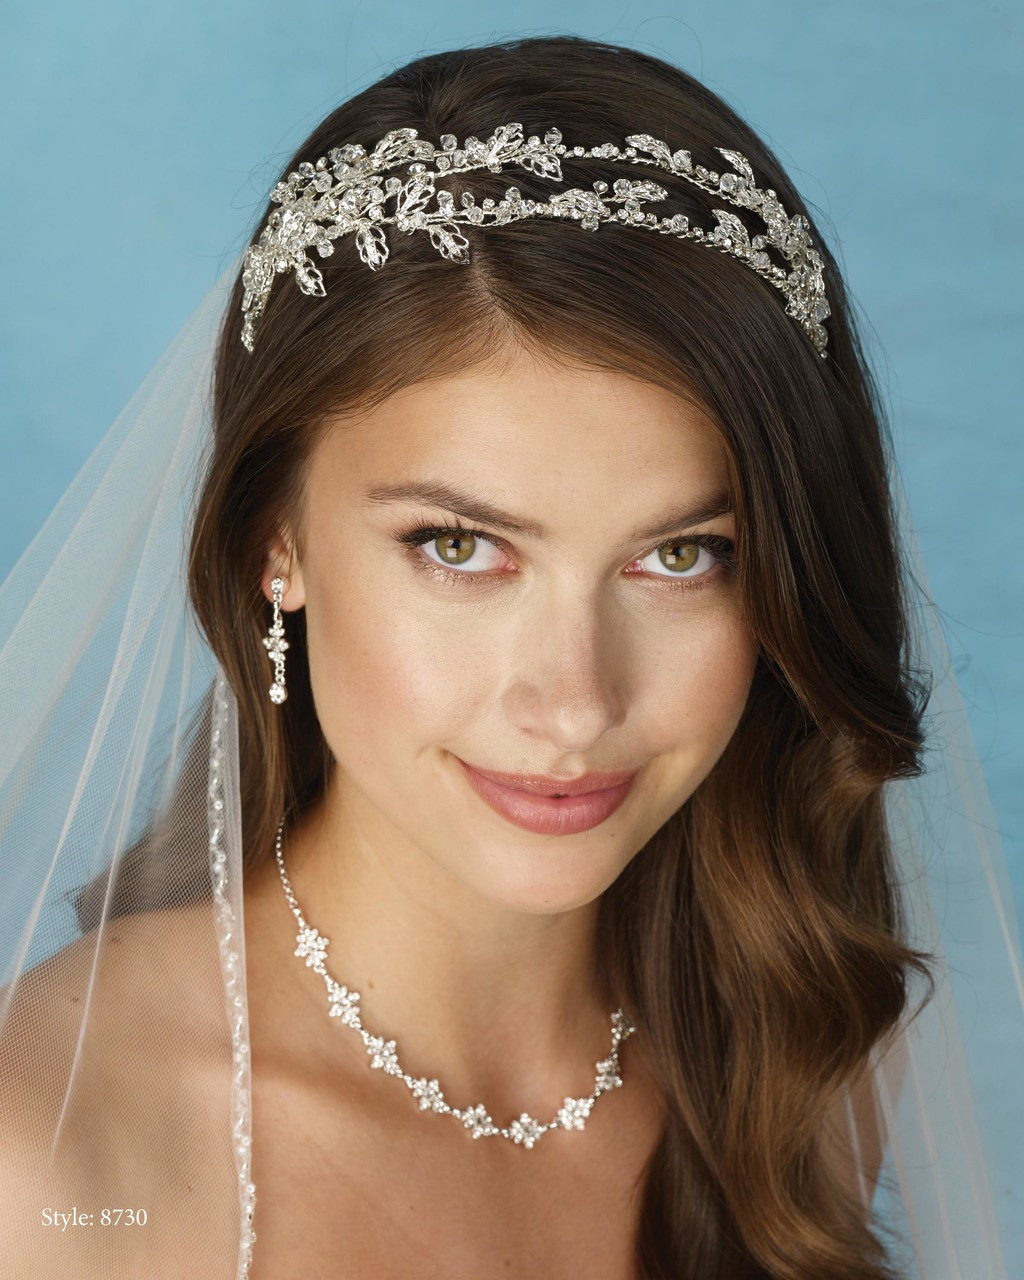 Marionat Bridal Headpieces 8730